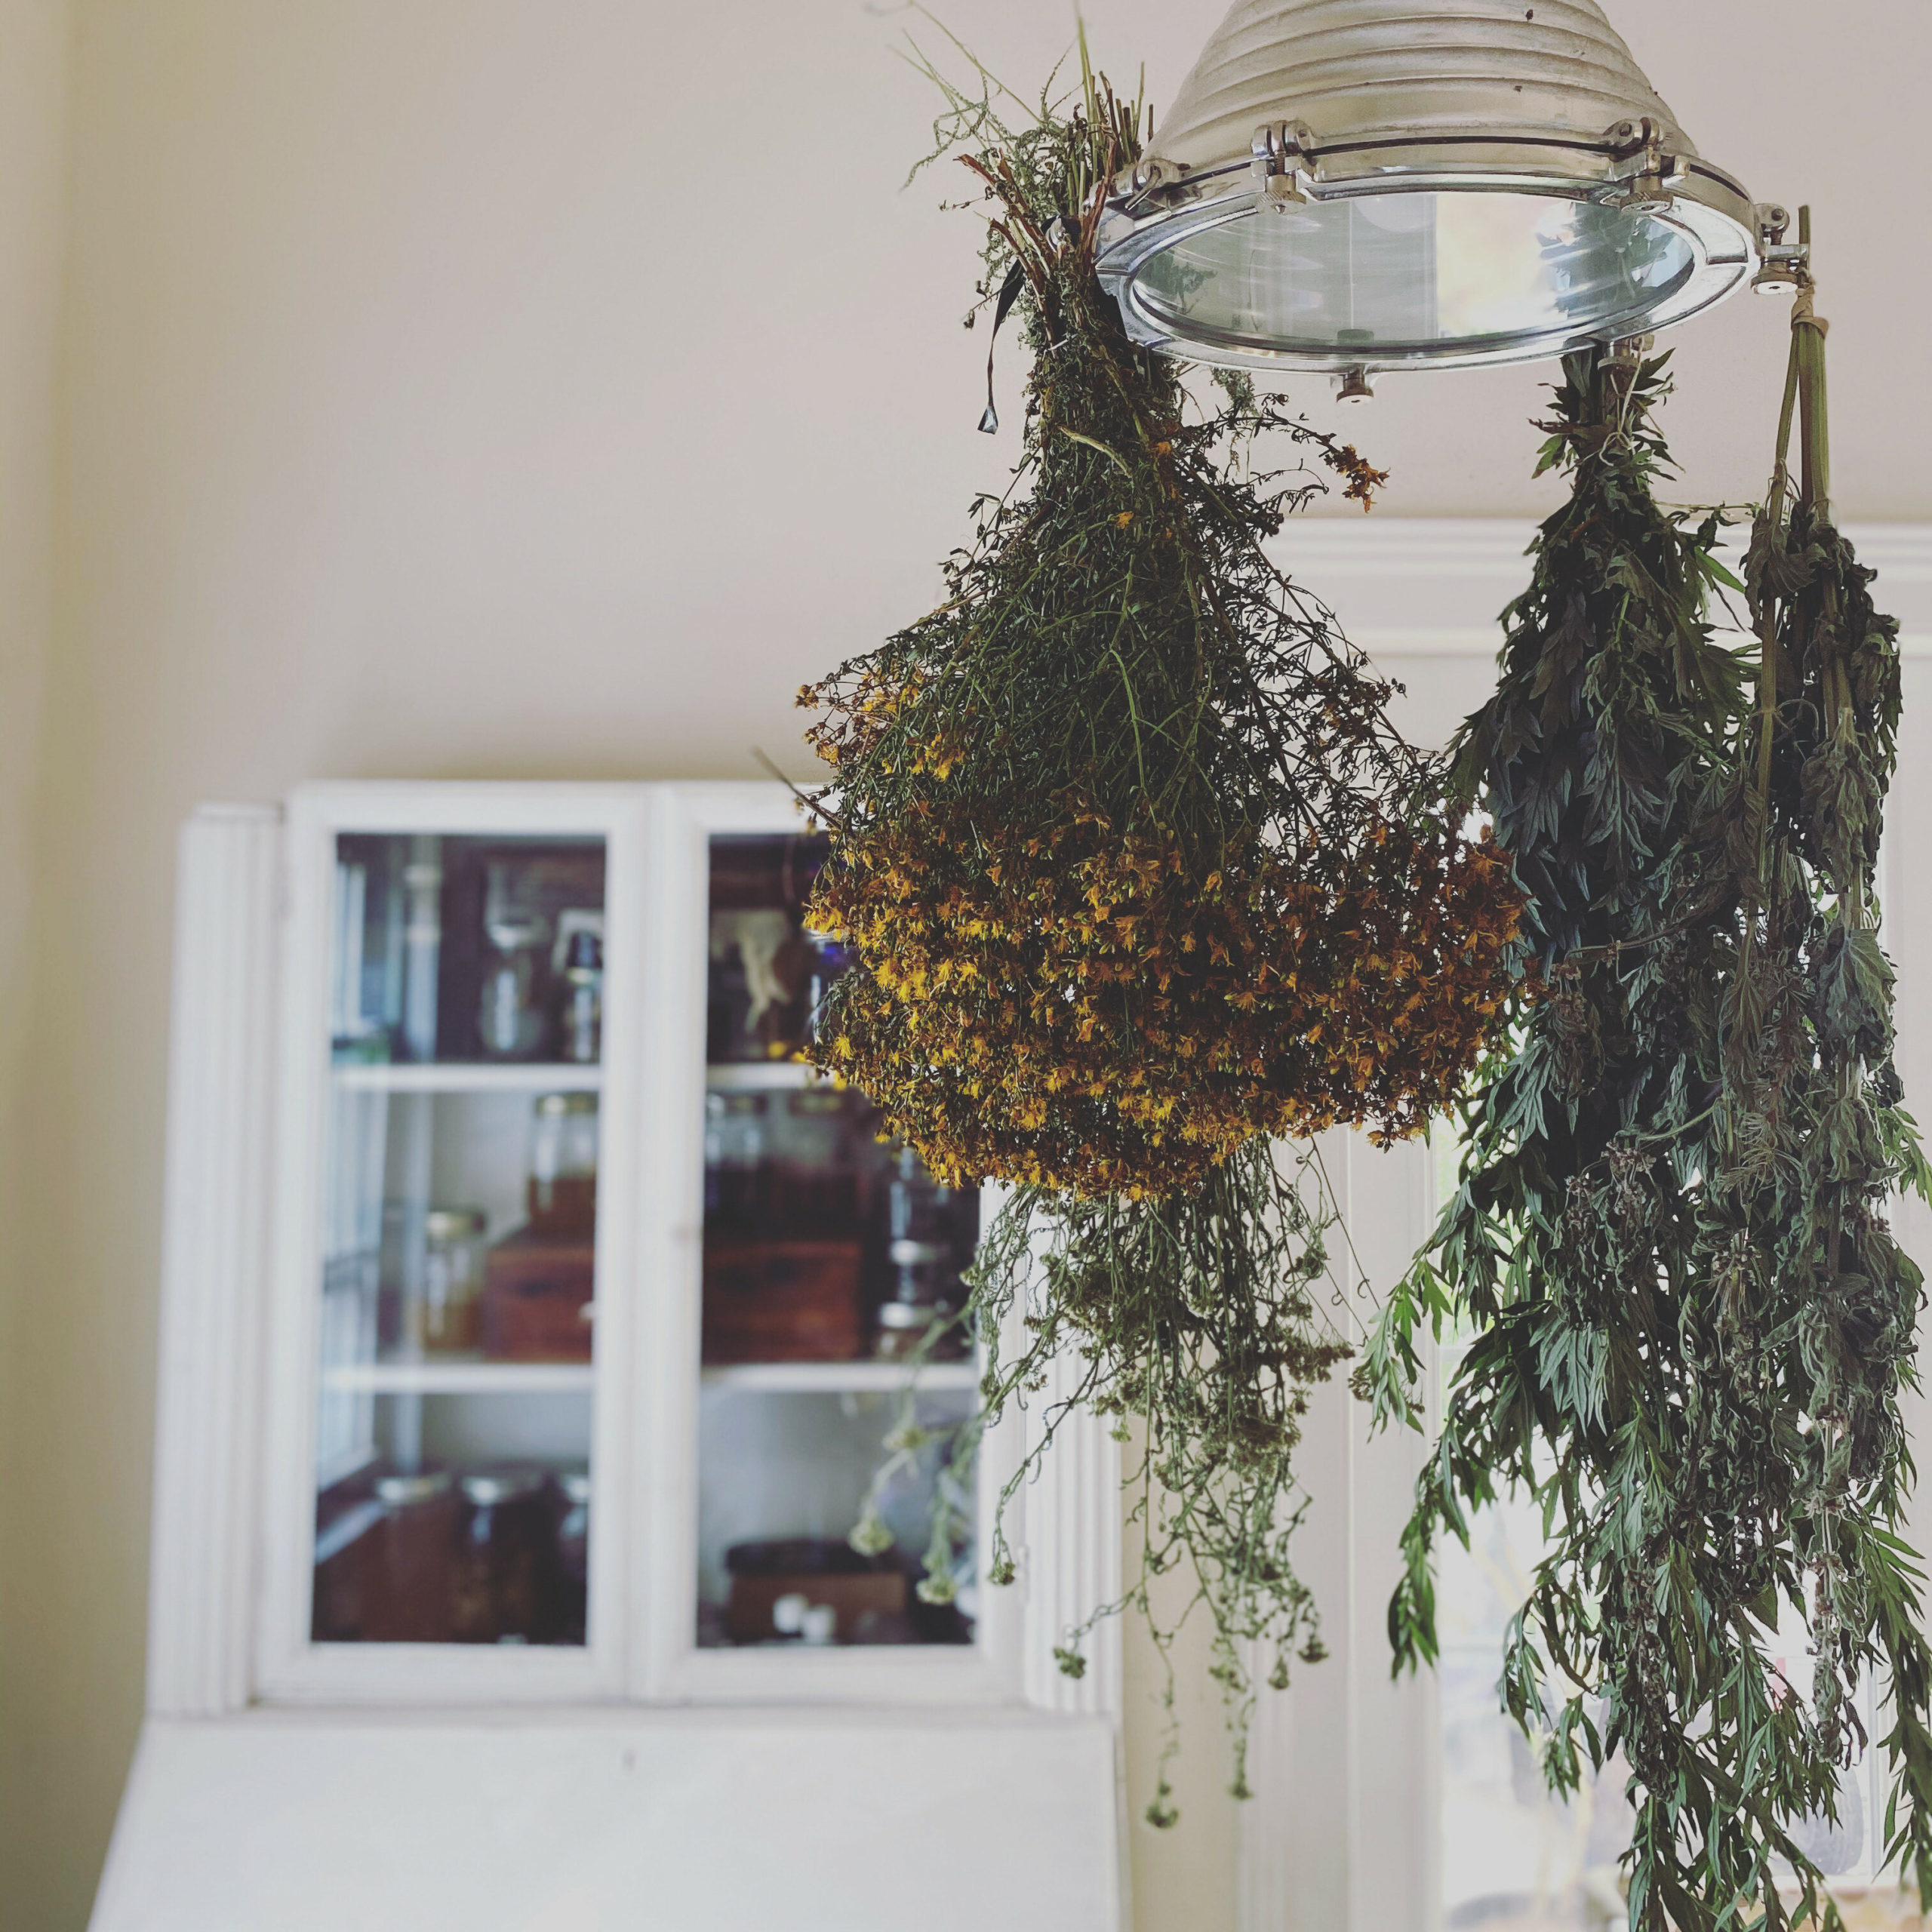 Drying herbs for Living Wild on Long Island.